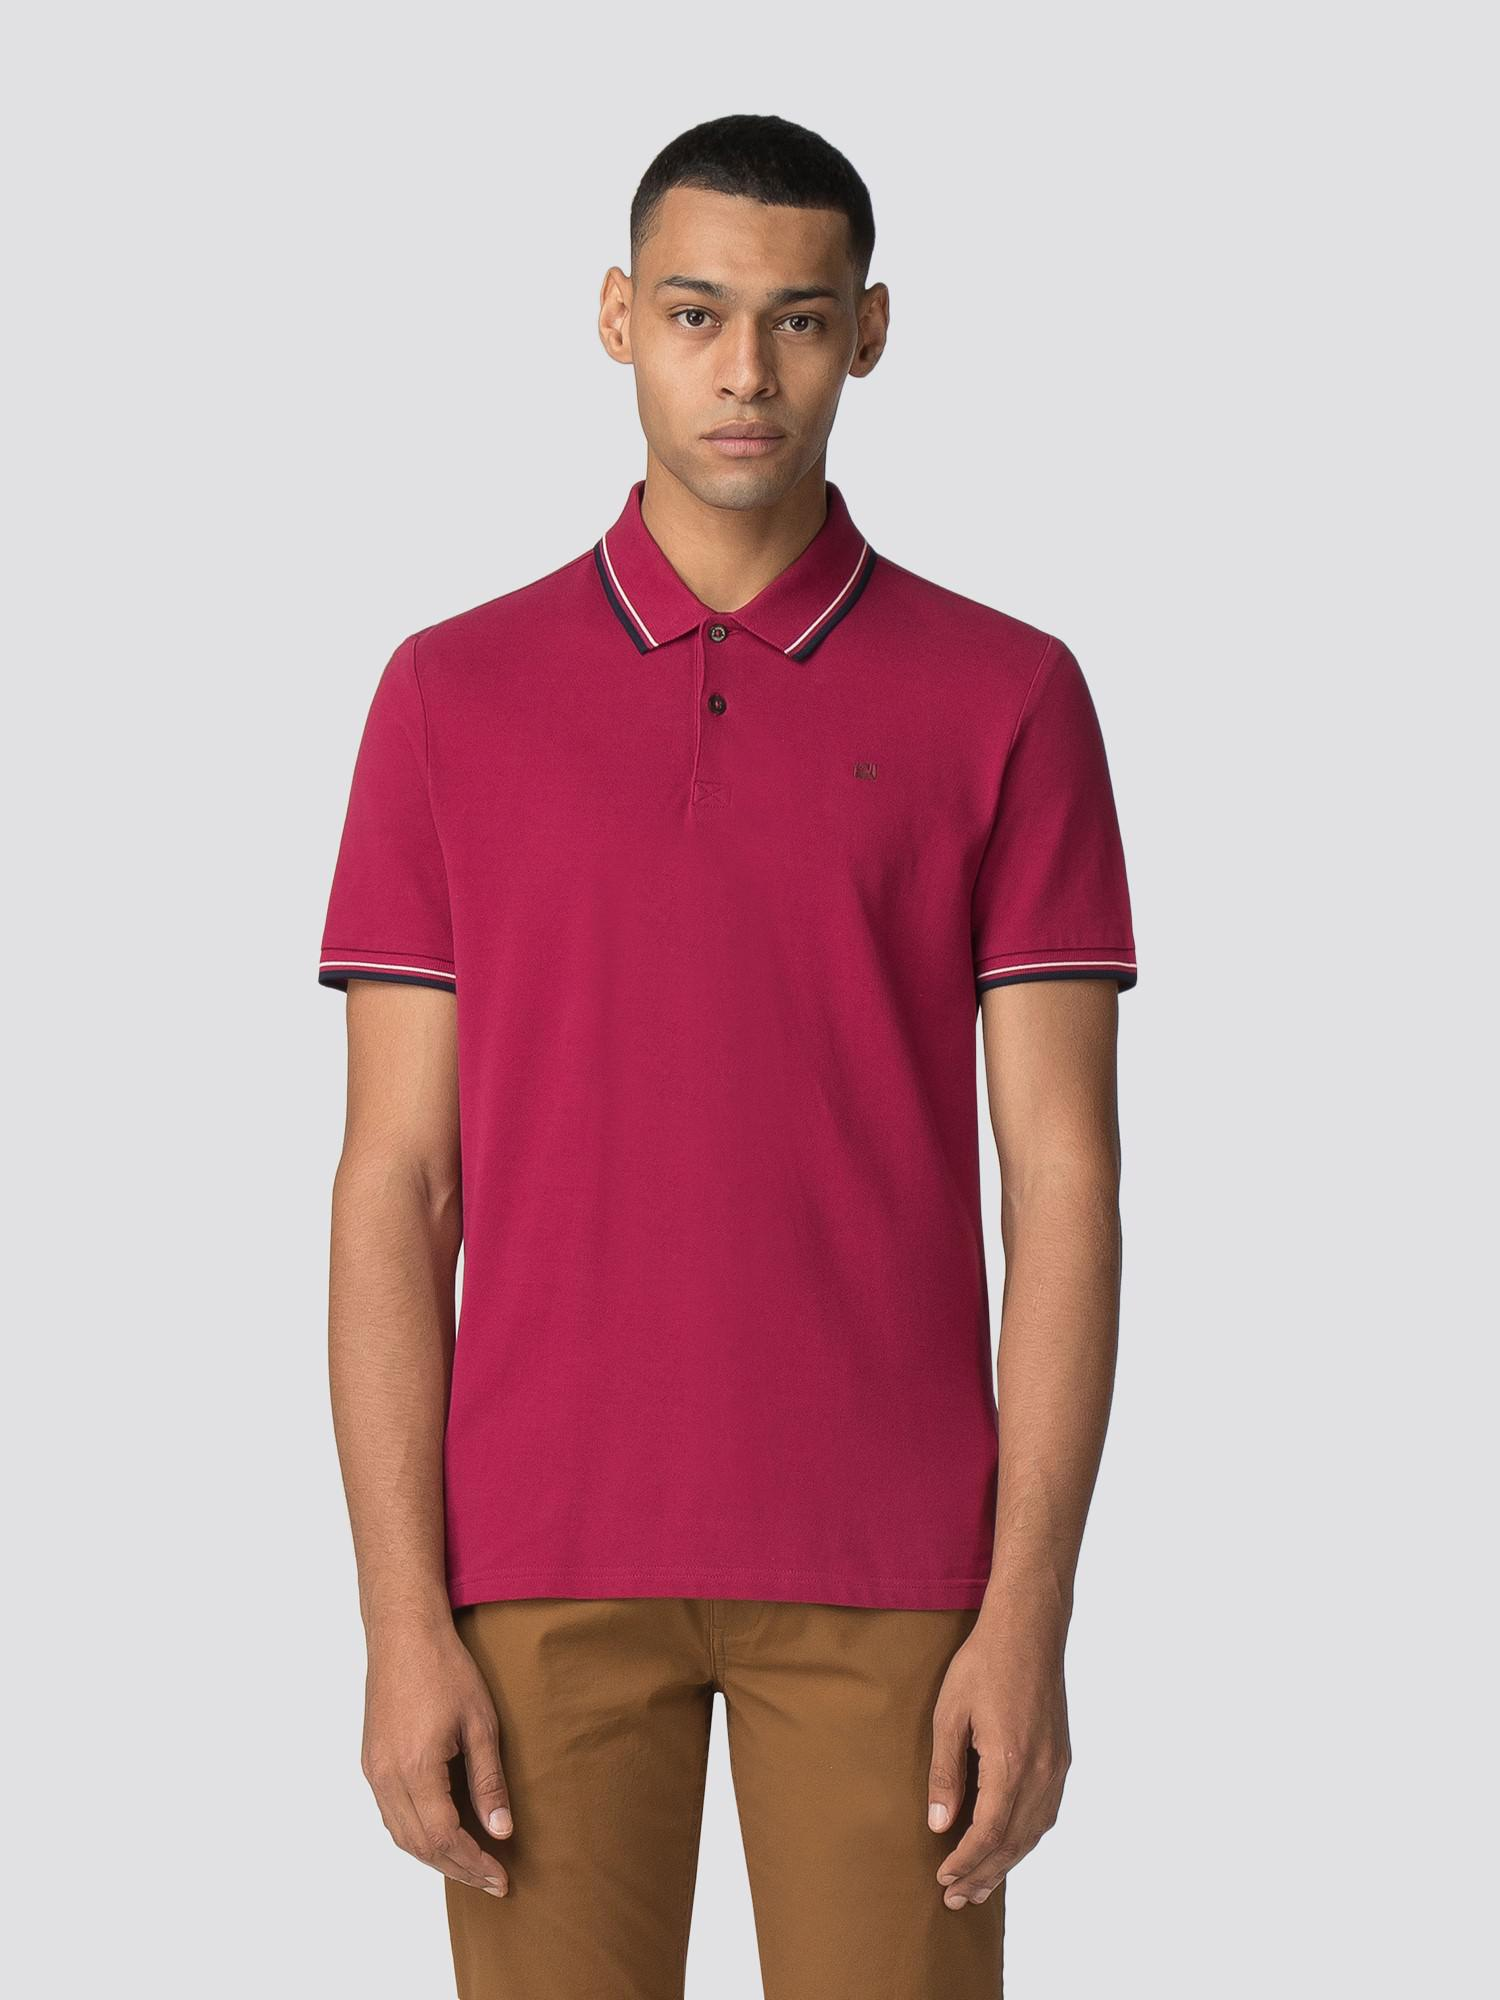 dc748ebf2 Ben Sherman Romford Polo Shirt in Red for Men - Lyst